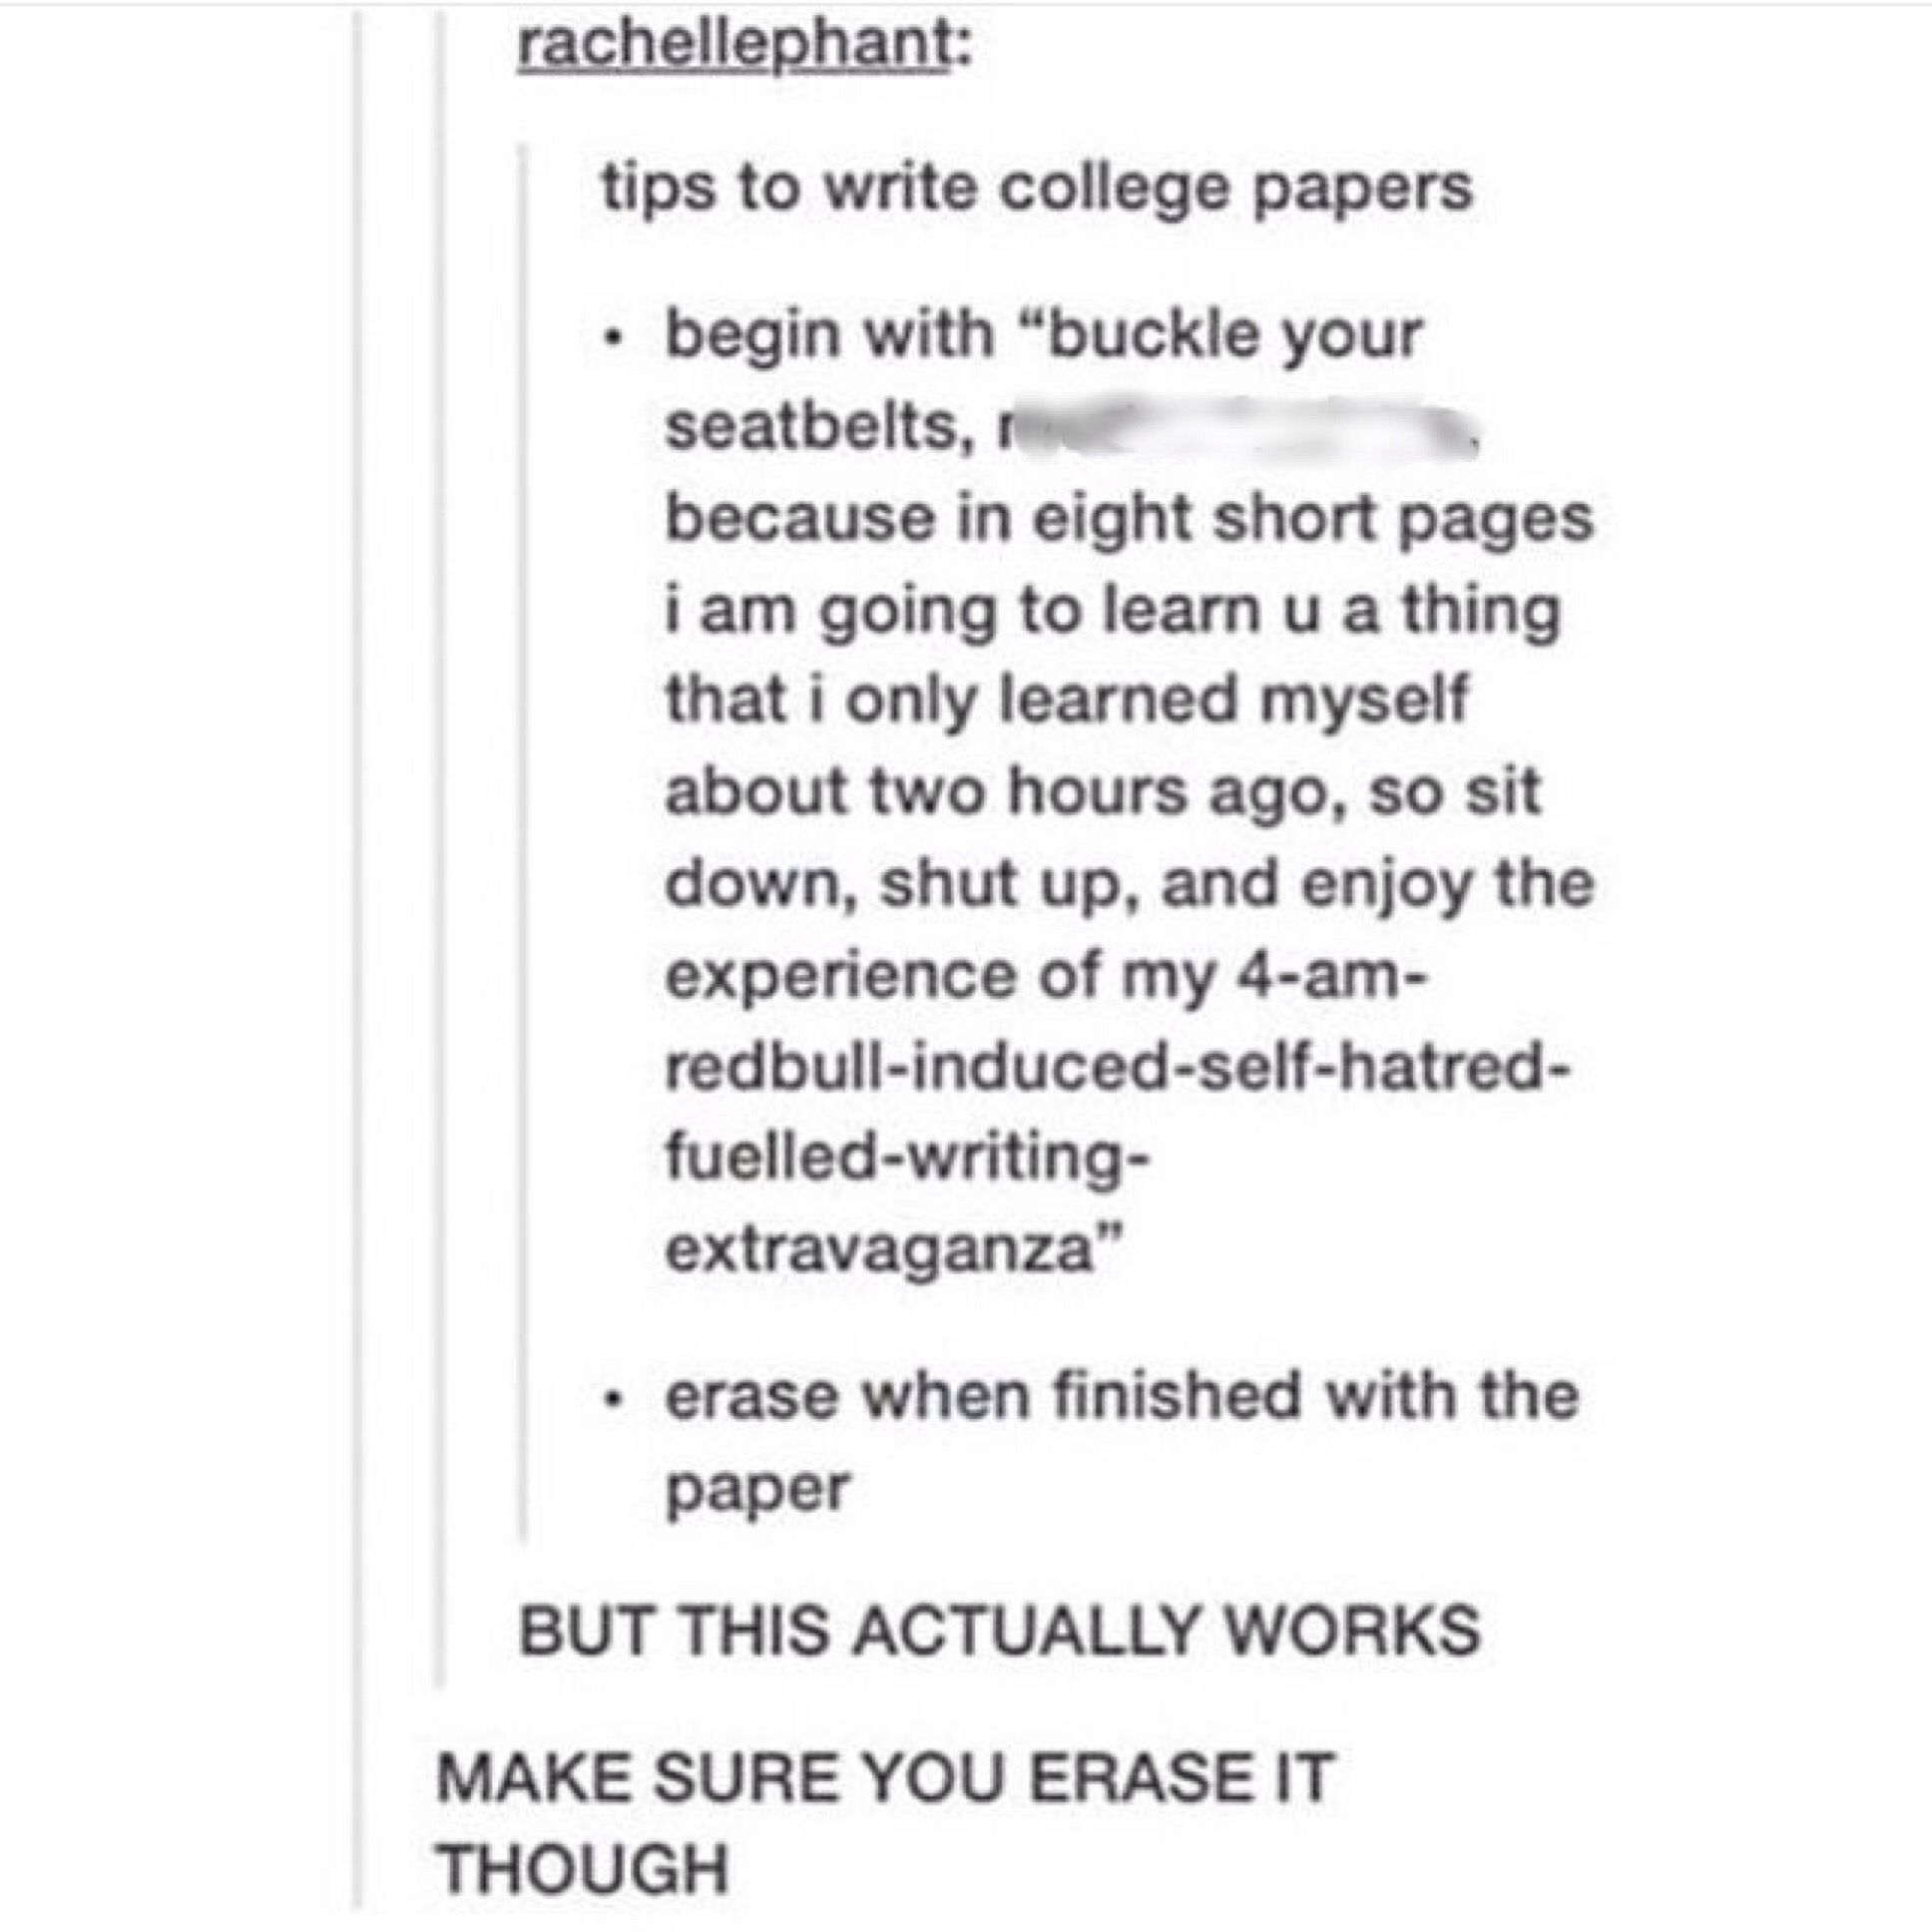 My Mother Essay In English How To Write A Funny Essay About Myself Colleges Science Technology Essay also Thesis Statement Examples For Essays How To Write A Funny Essay About Myself Colleges  Humor And The  Sample Essay English